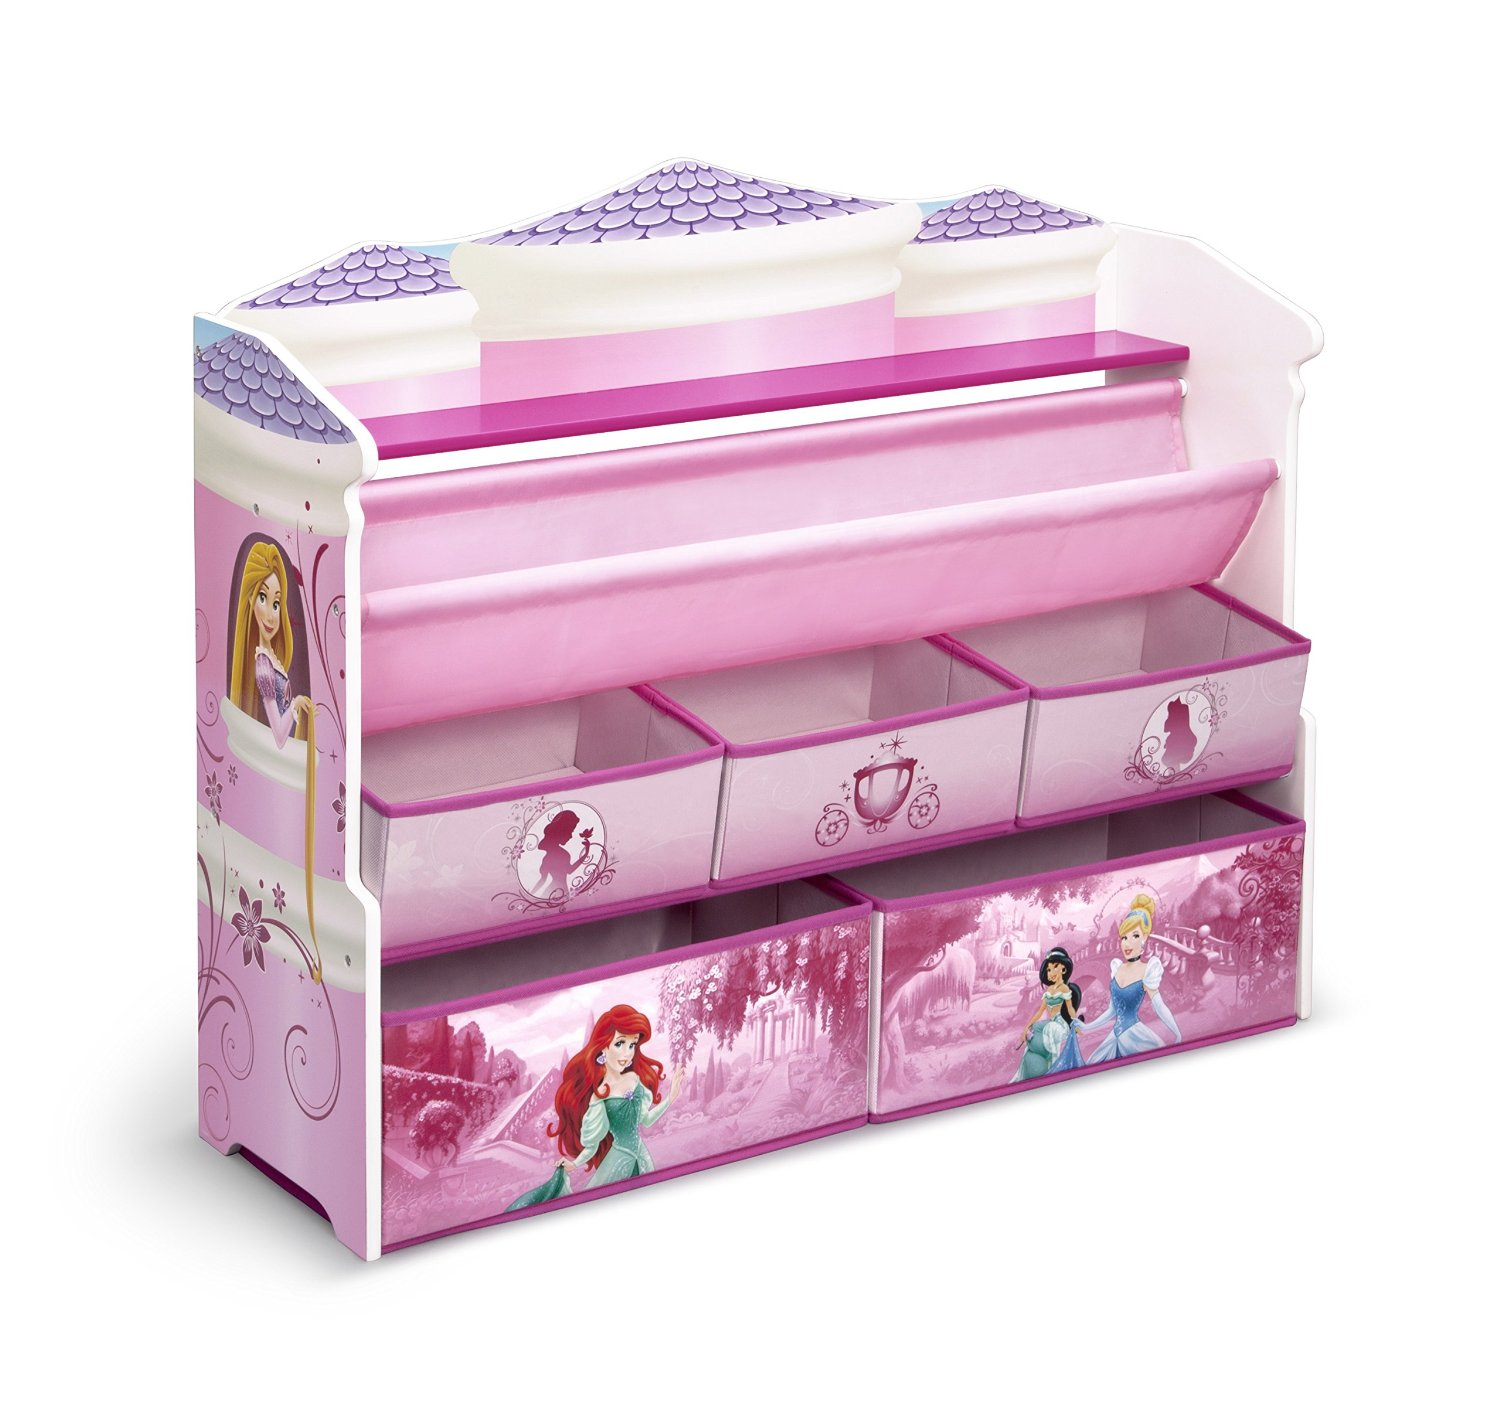 Disney Princess Toy Organizer  sc 1 st  Home Stratosphere & 10 Types of Toy Organizers for Kids Bedrooms and Playrooms